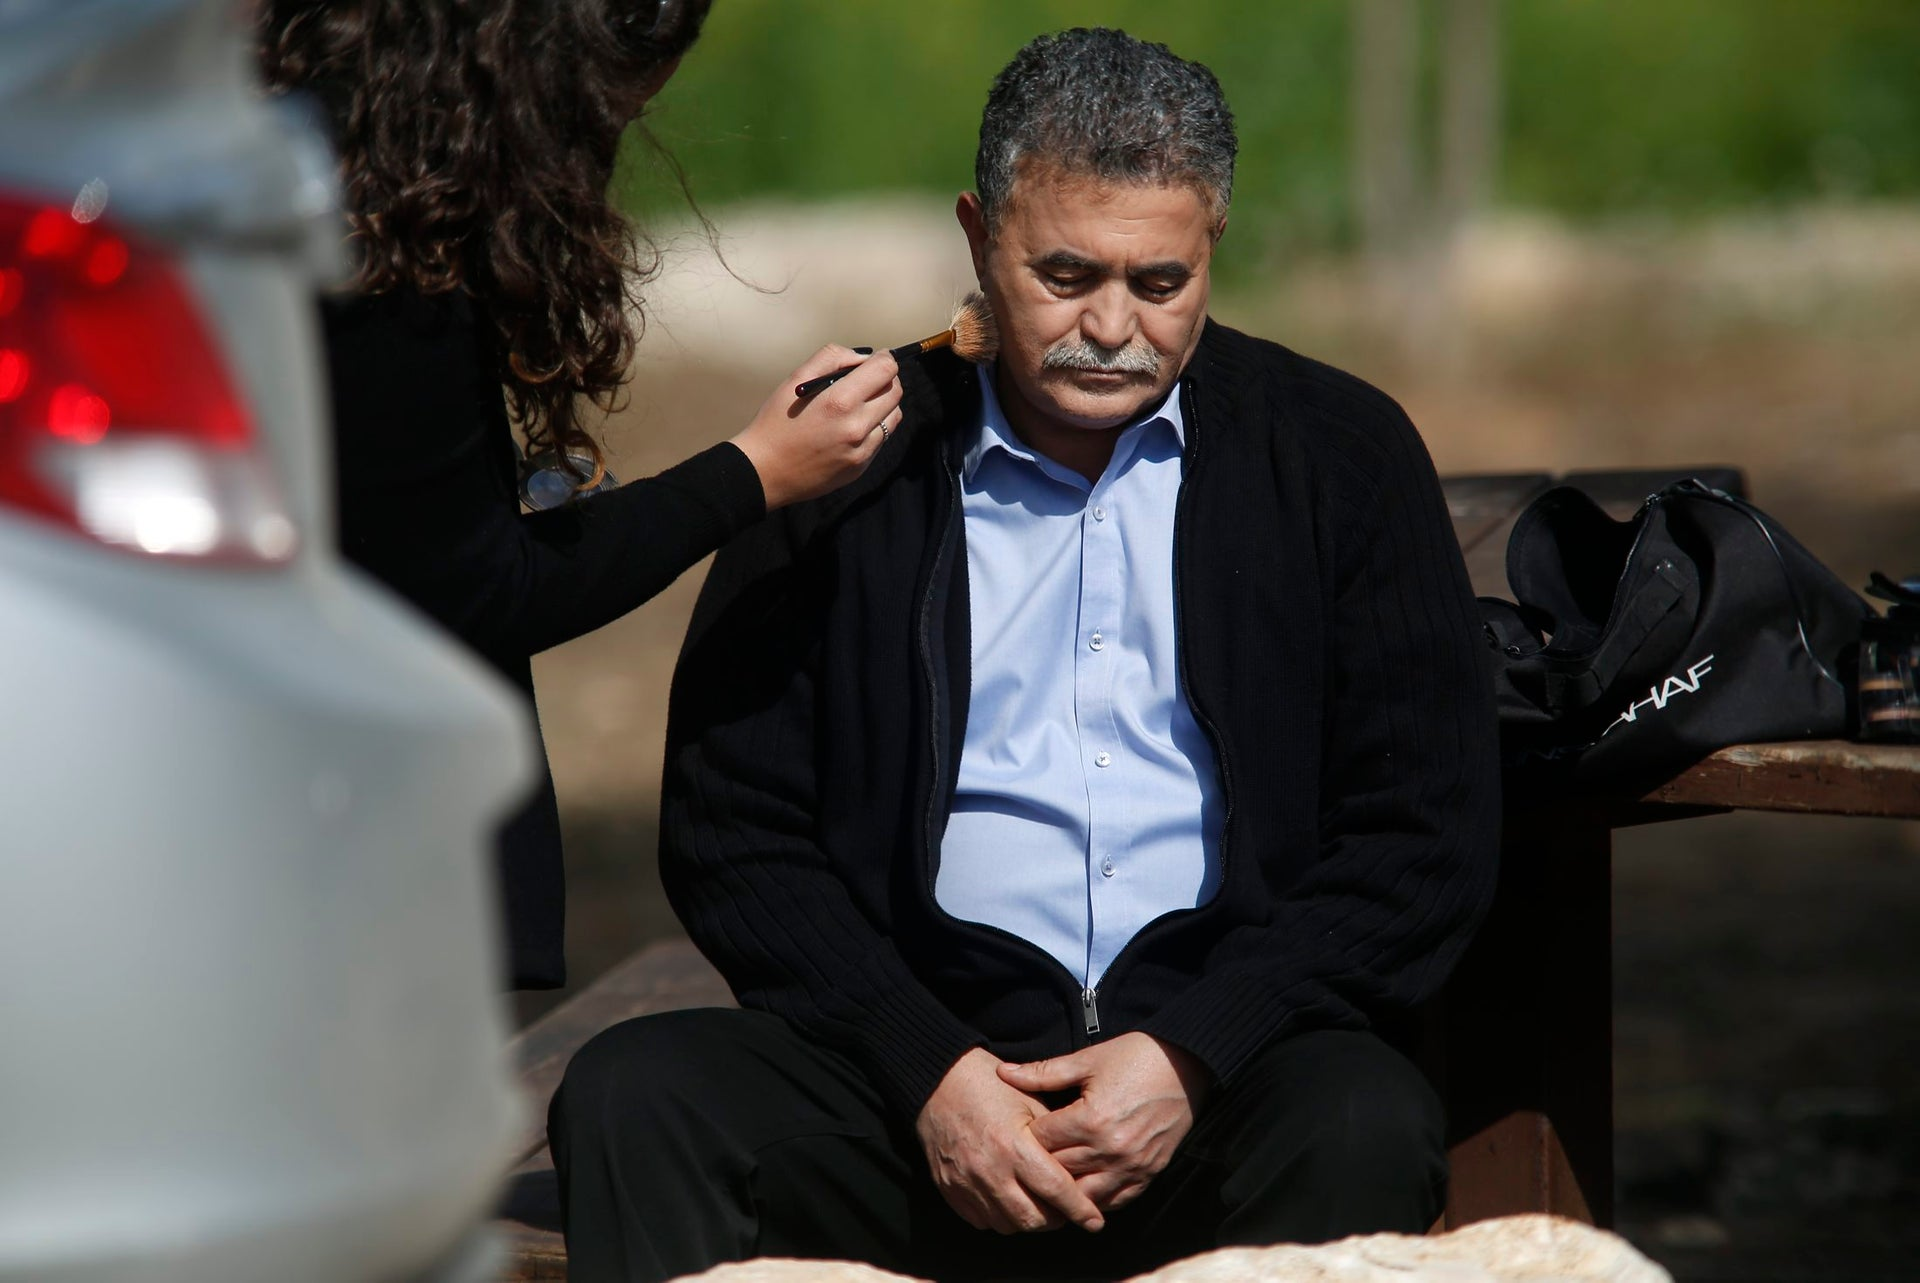 MK Amir Peretz preparing for an interview near the border between Israel and the Gaza Strip, February 6, 2016.